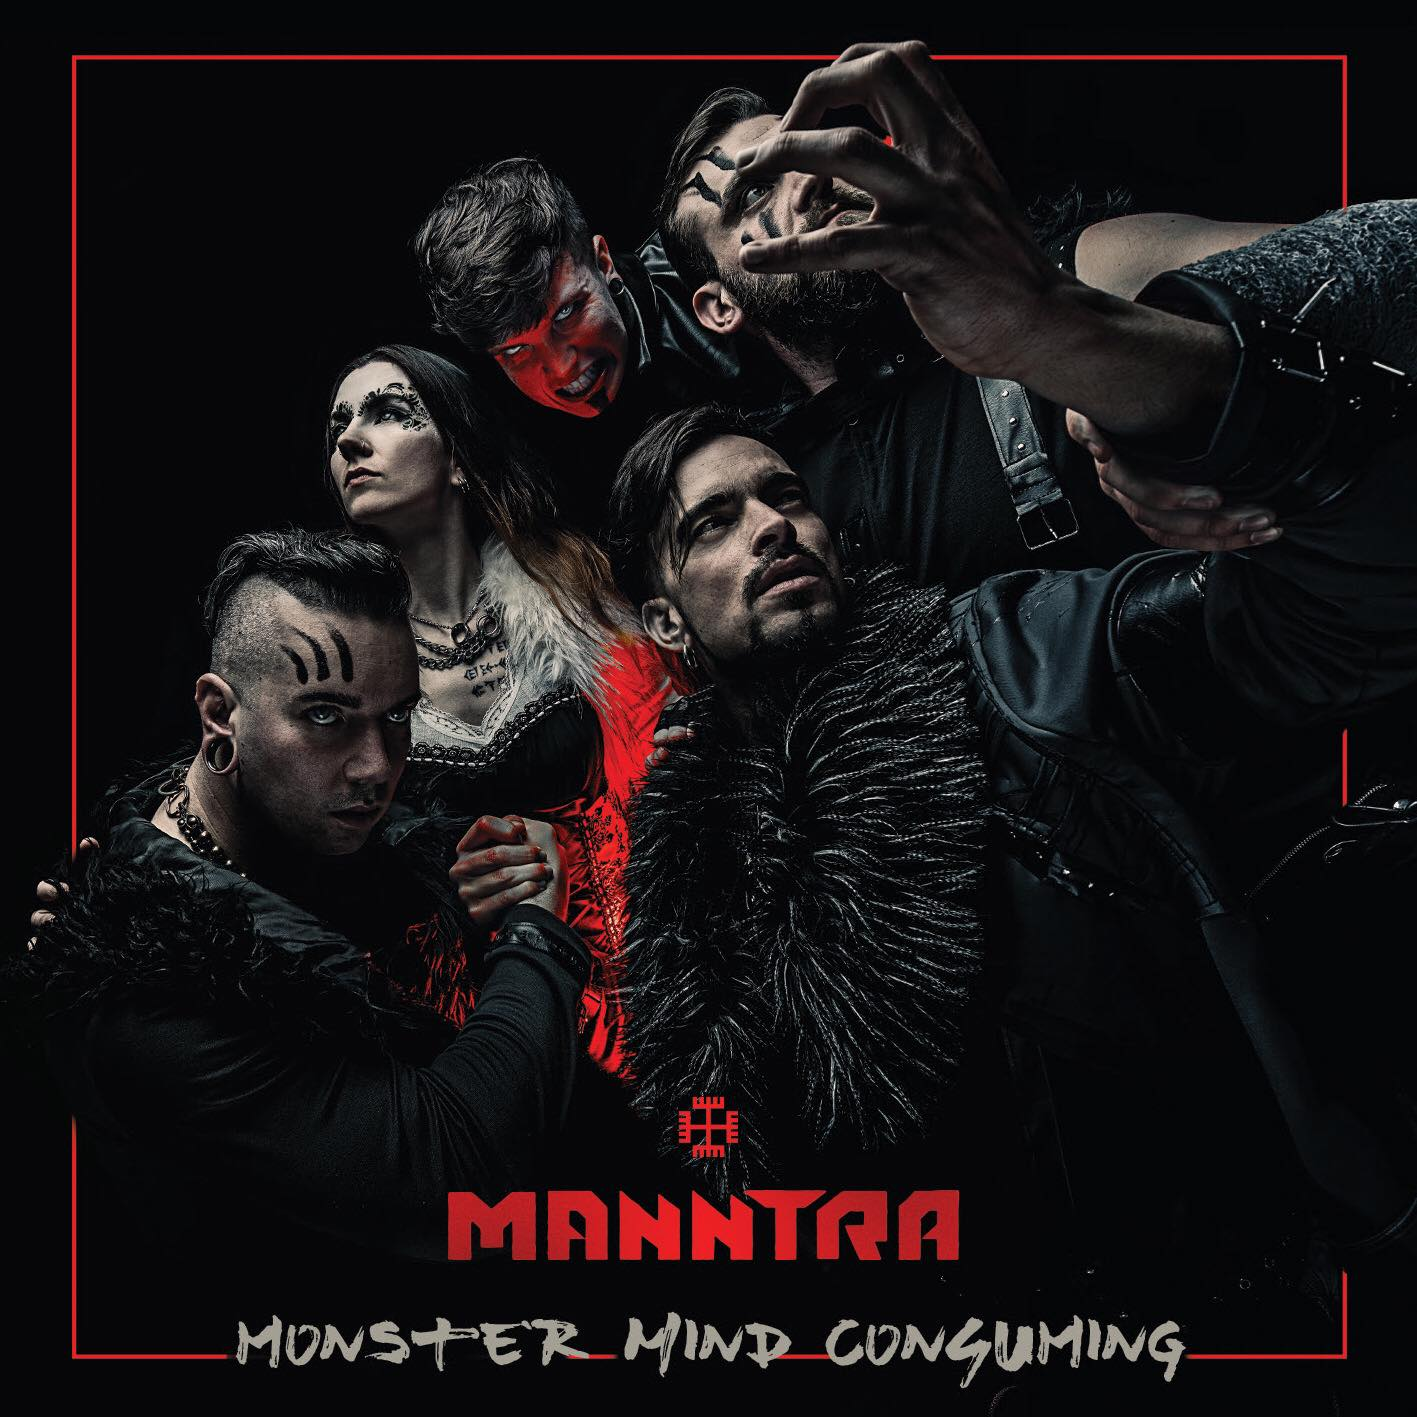 manntra-neues-album-monster-mind-consuming-hoerenswerter-kroatischer-folk-metal-mix-album-review